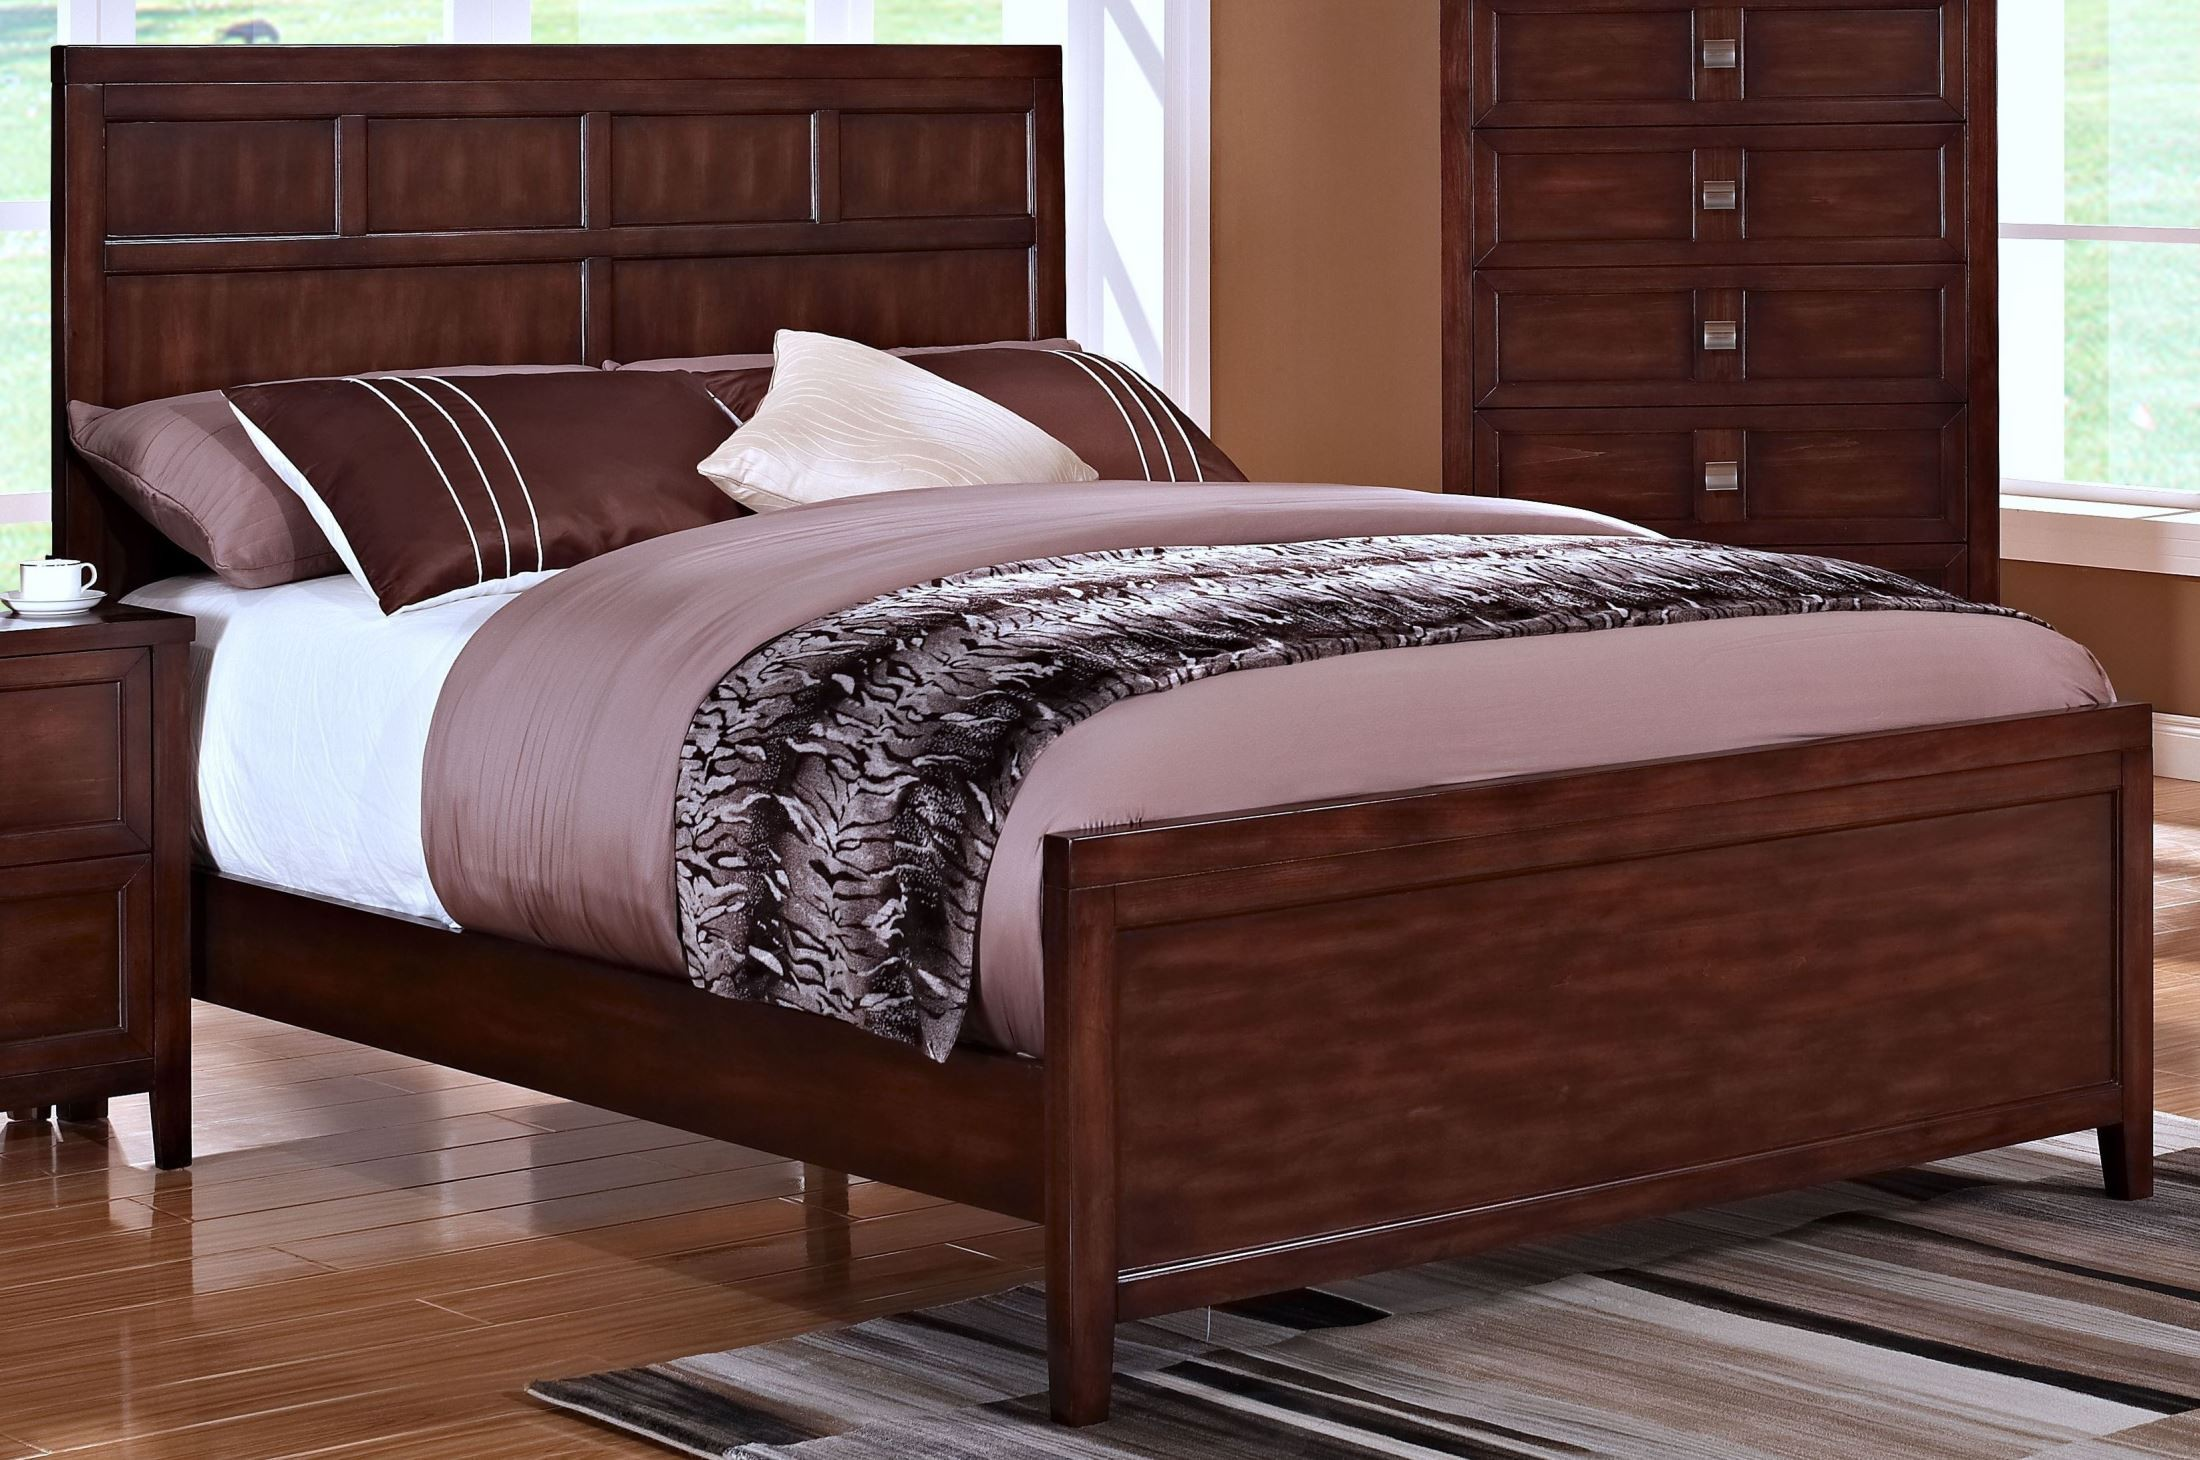 Ridgecrest distressed walnut panel bedroom set from new for Walnut bedroom furniture